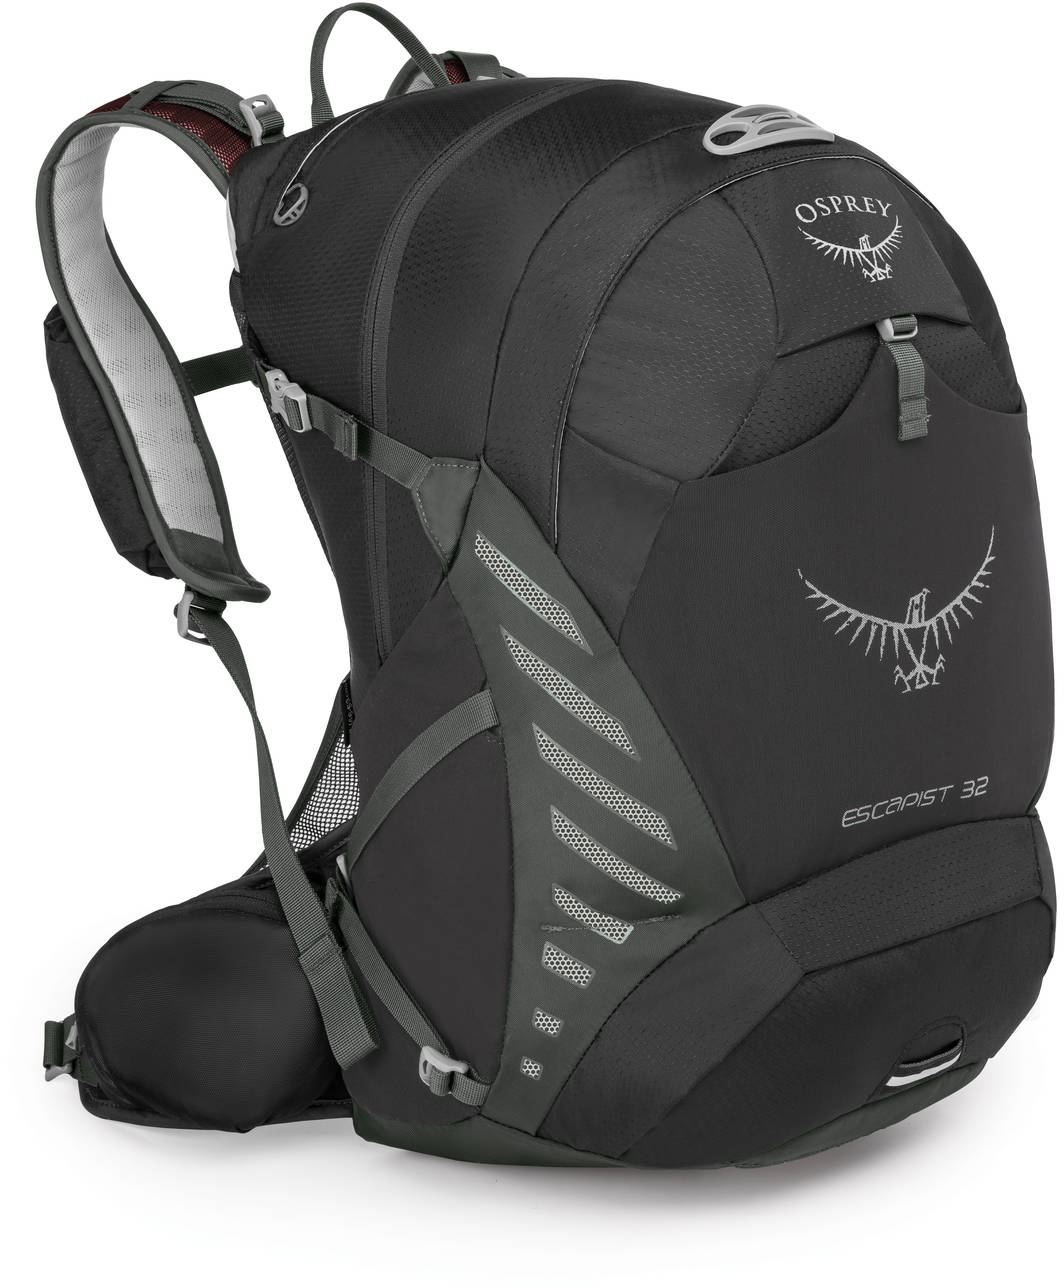 Велорюкзаки Велорюкзак Osprey Escapist 32 Escapist_32_Side_Black_web.jpg